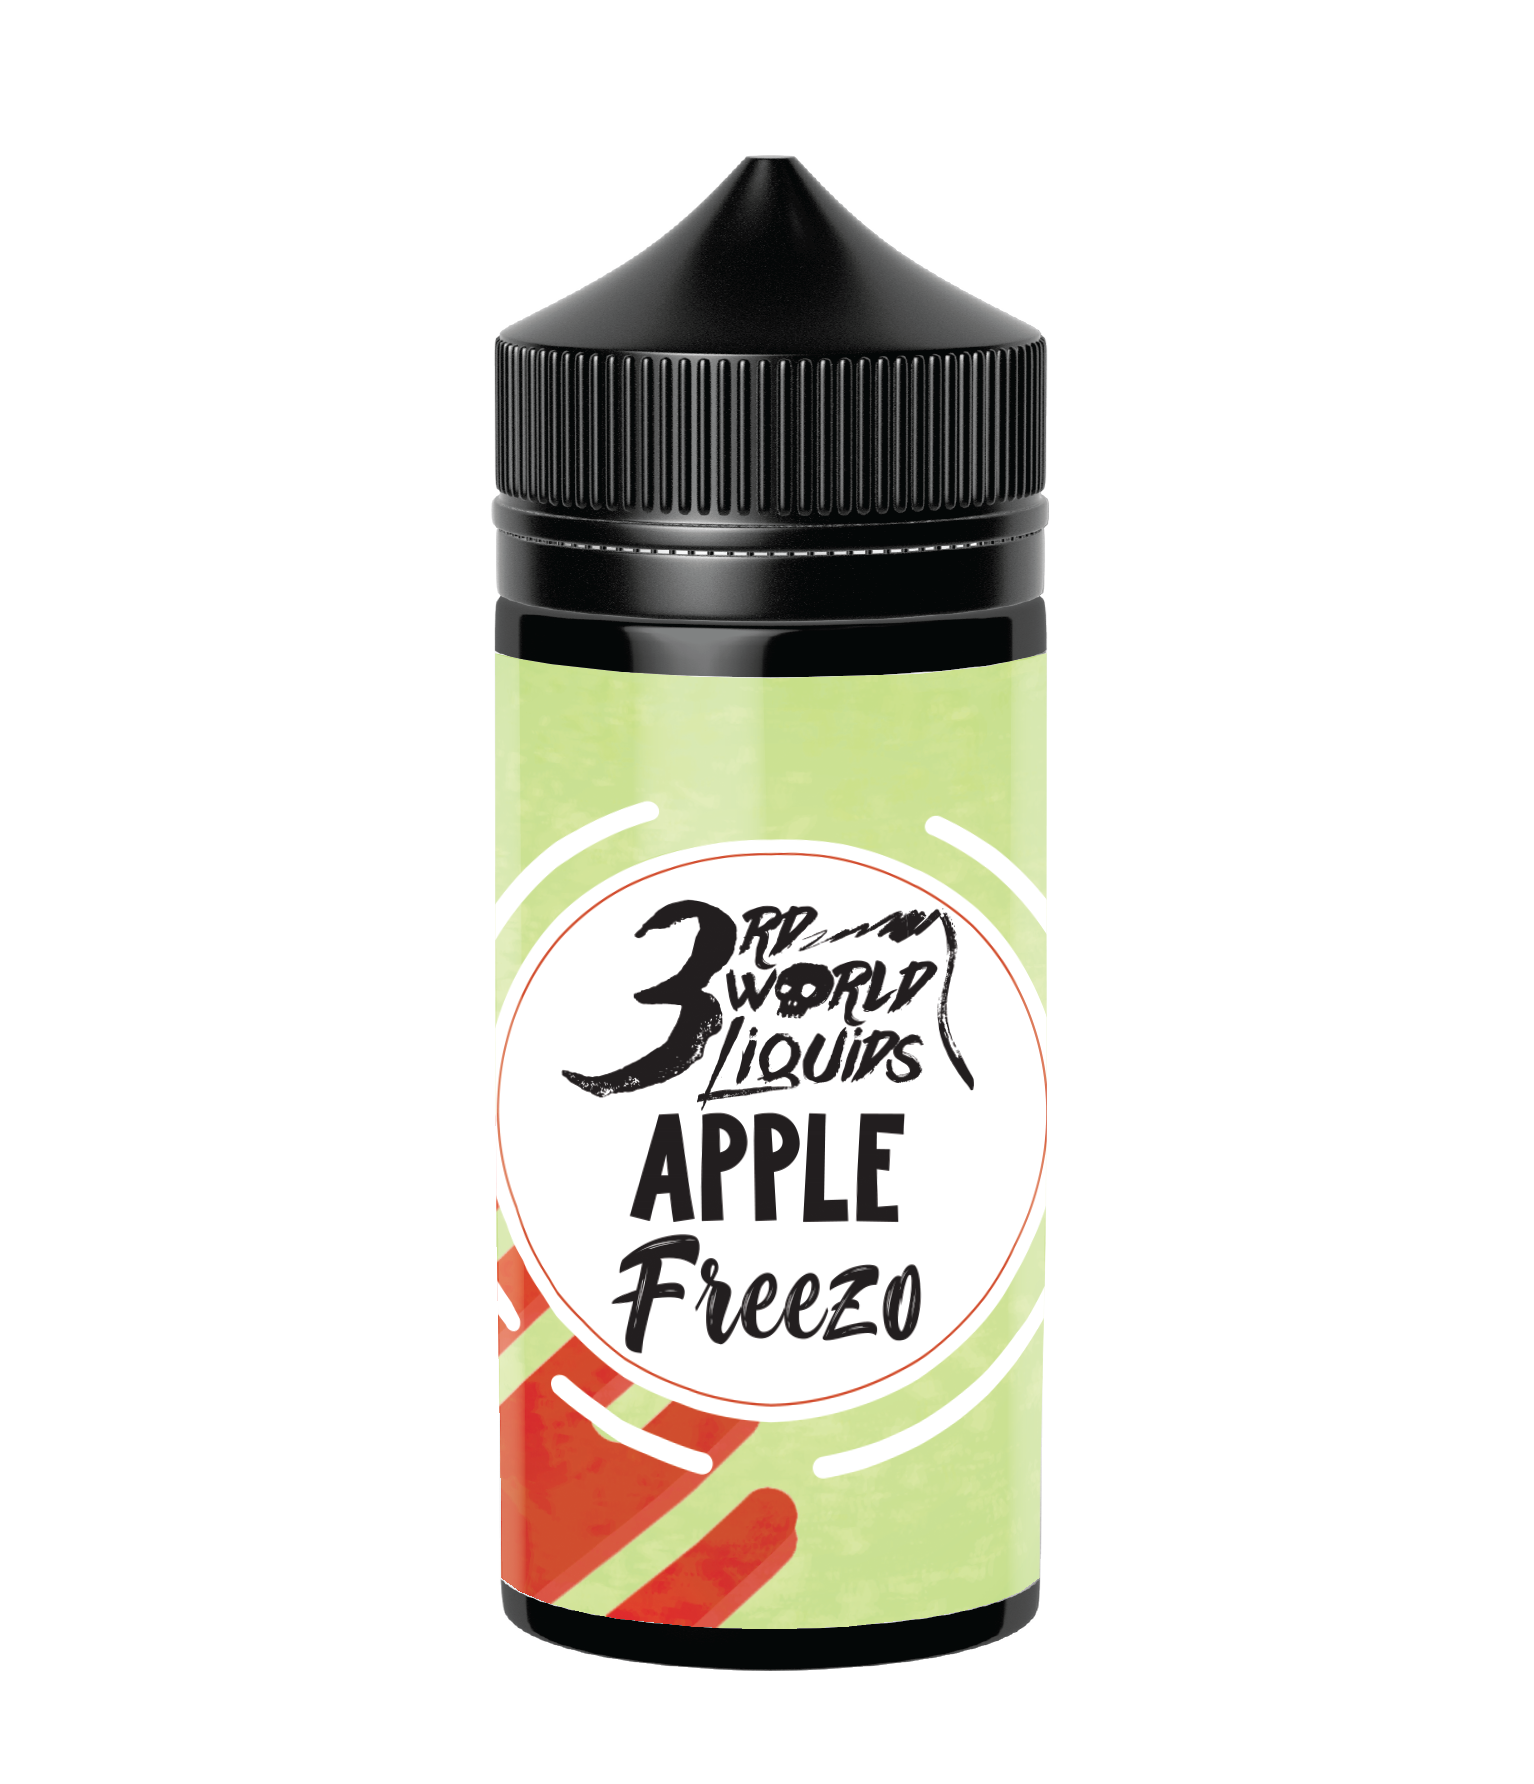 3rd World E-Liquid - Apple Freezo